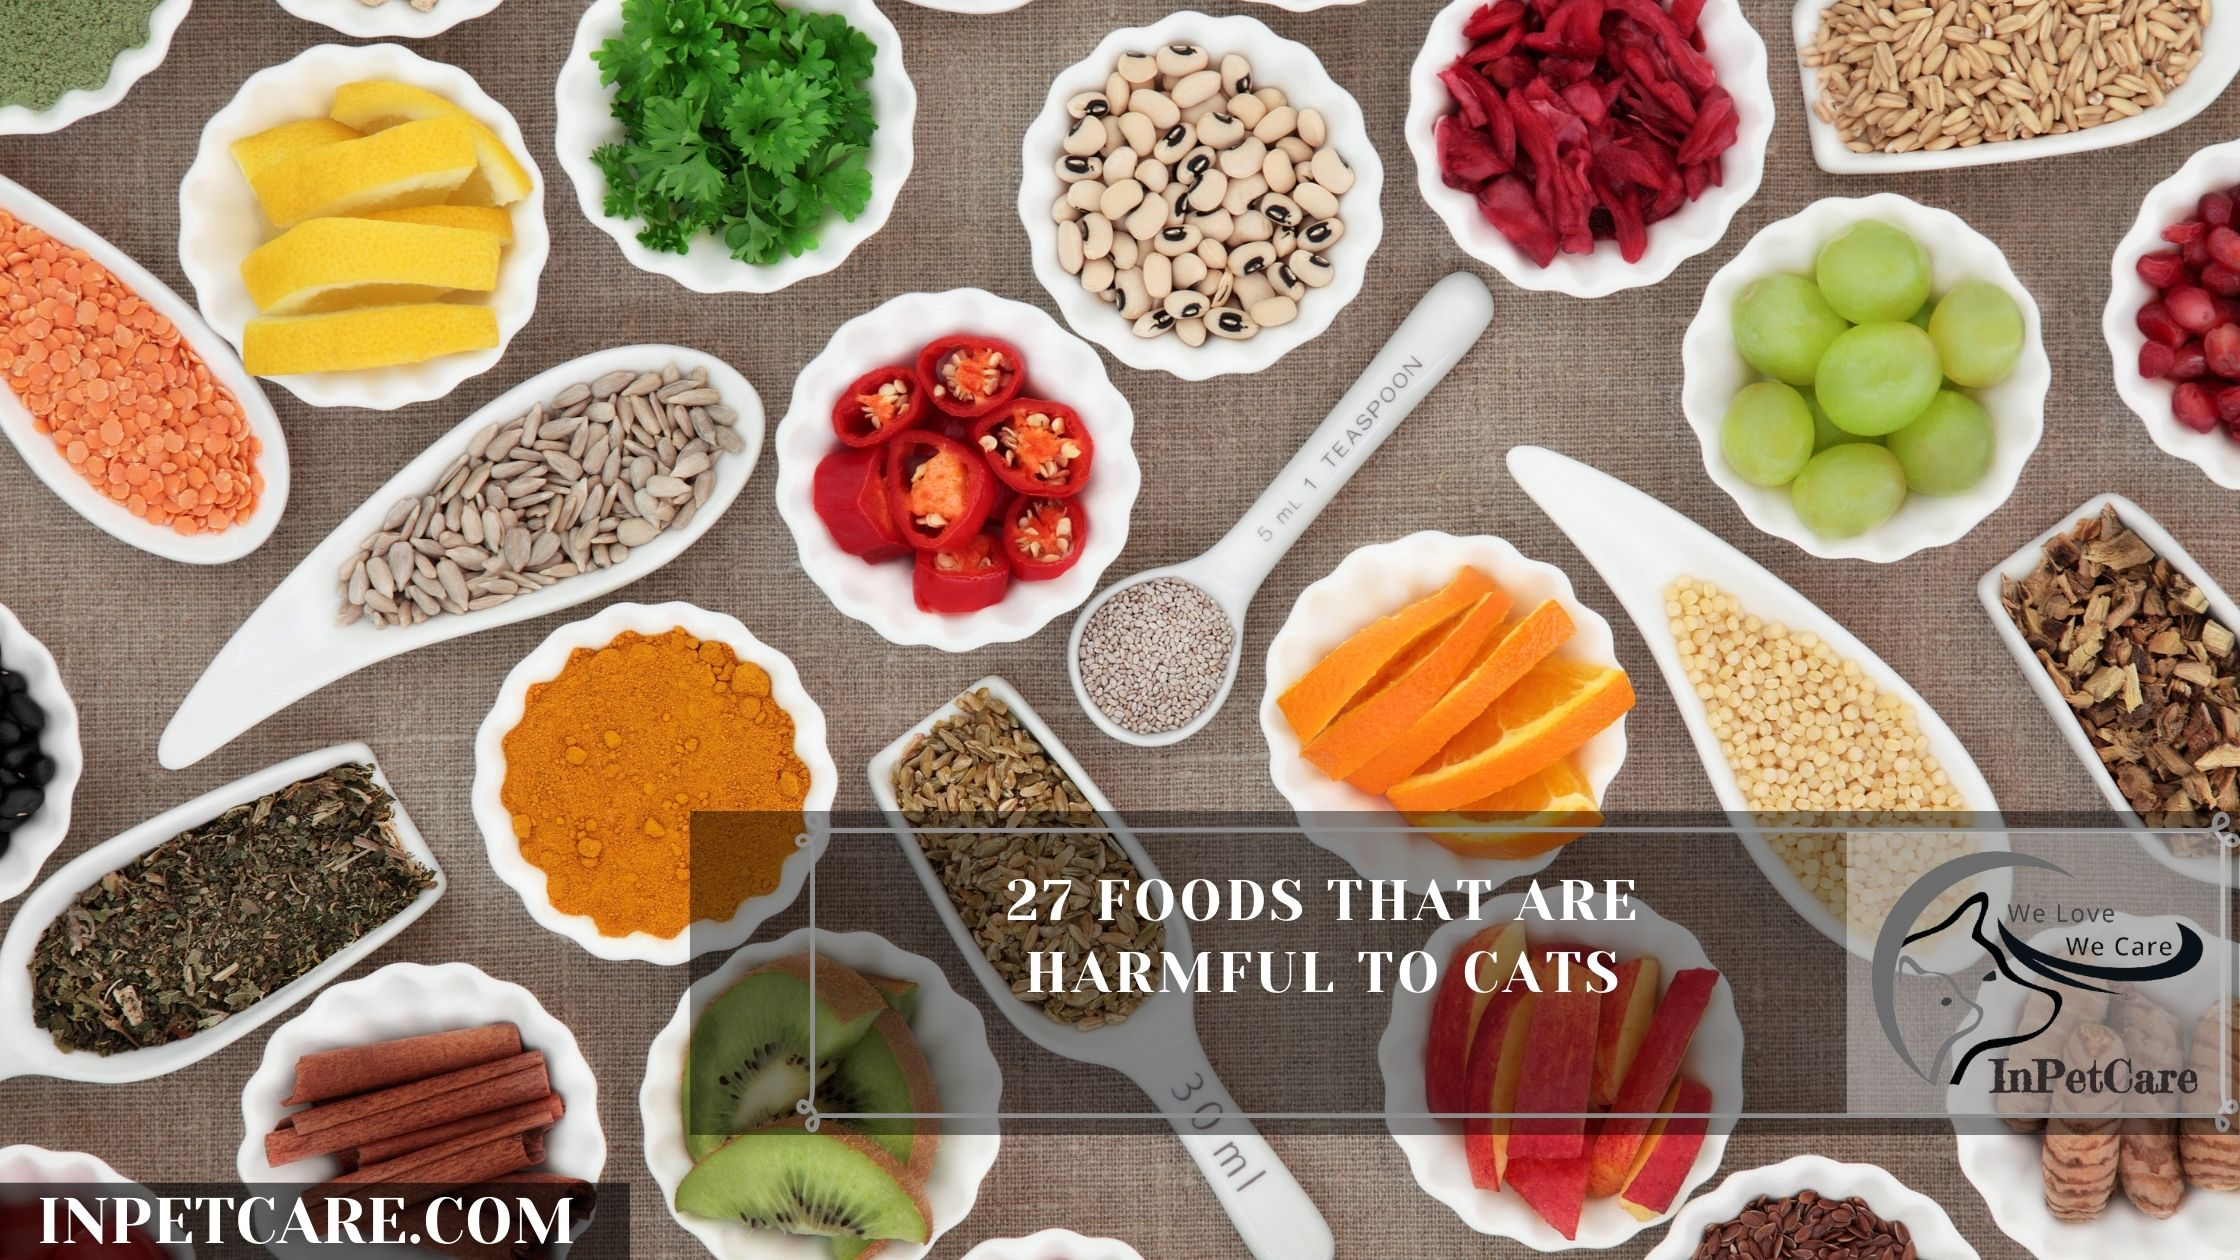 27 Foods That Are Harmful To Cats